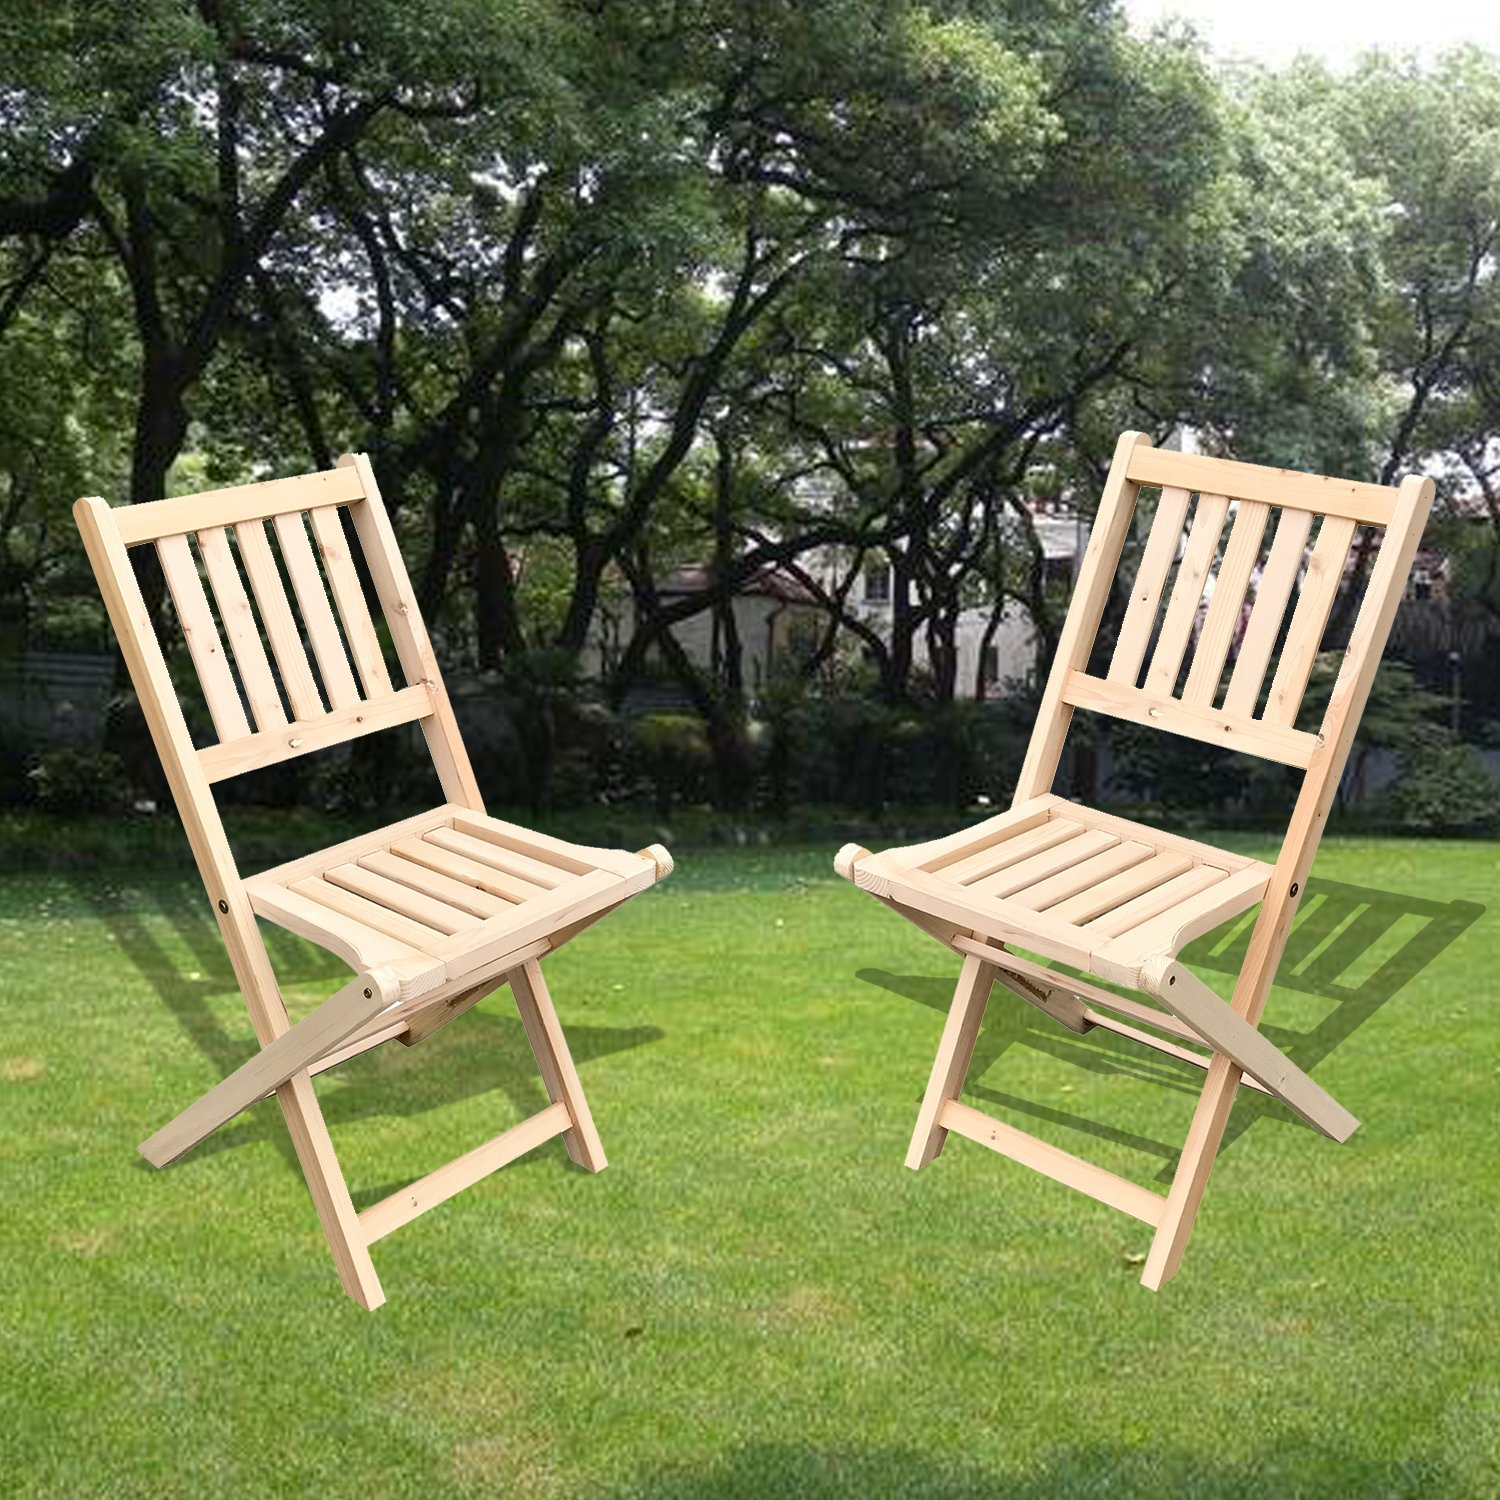 UHOM 2PCS Wooden Folding Chair Outdoor Garden Wood Slat Seat Indoor Deck Furniture Natural Finish